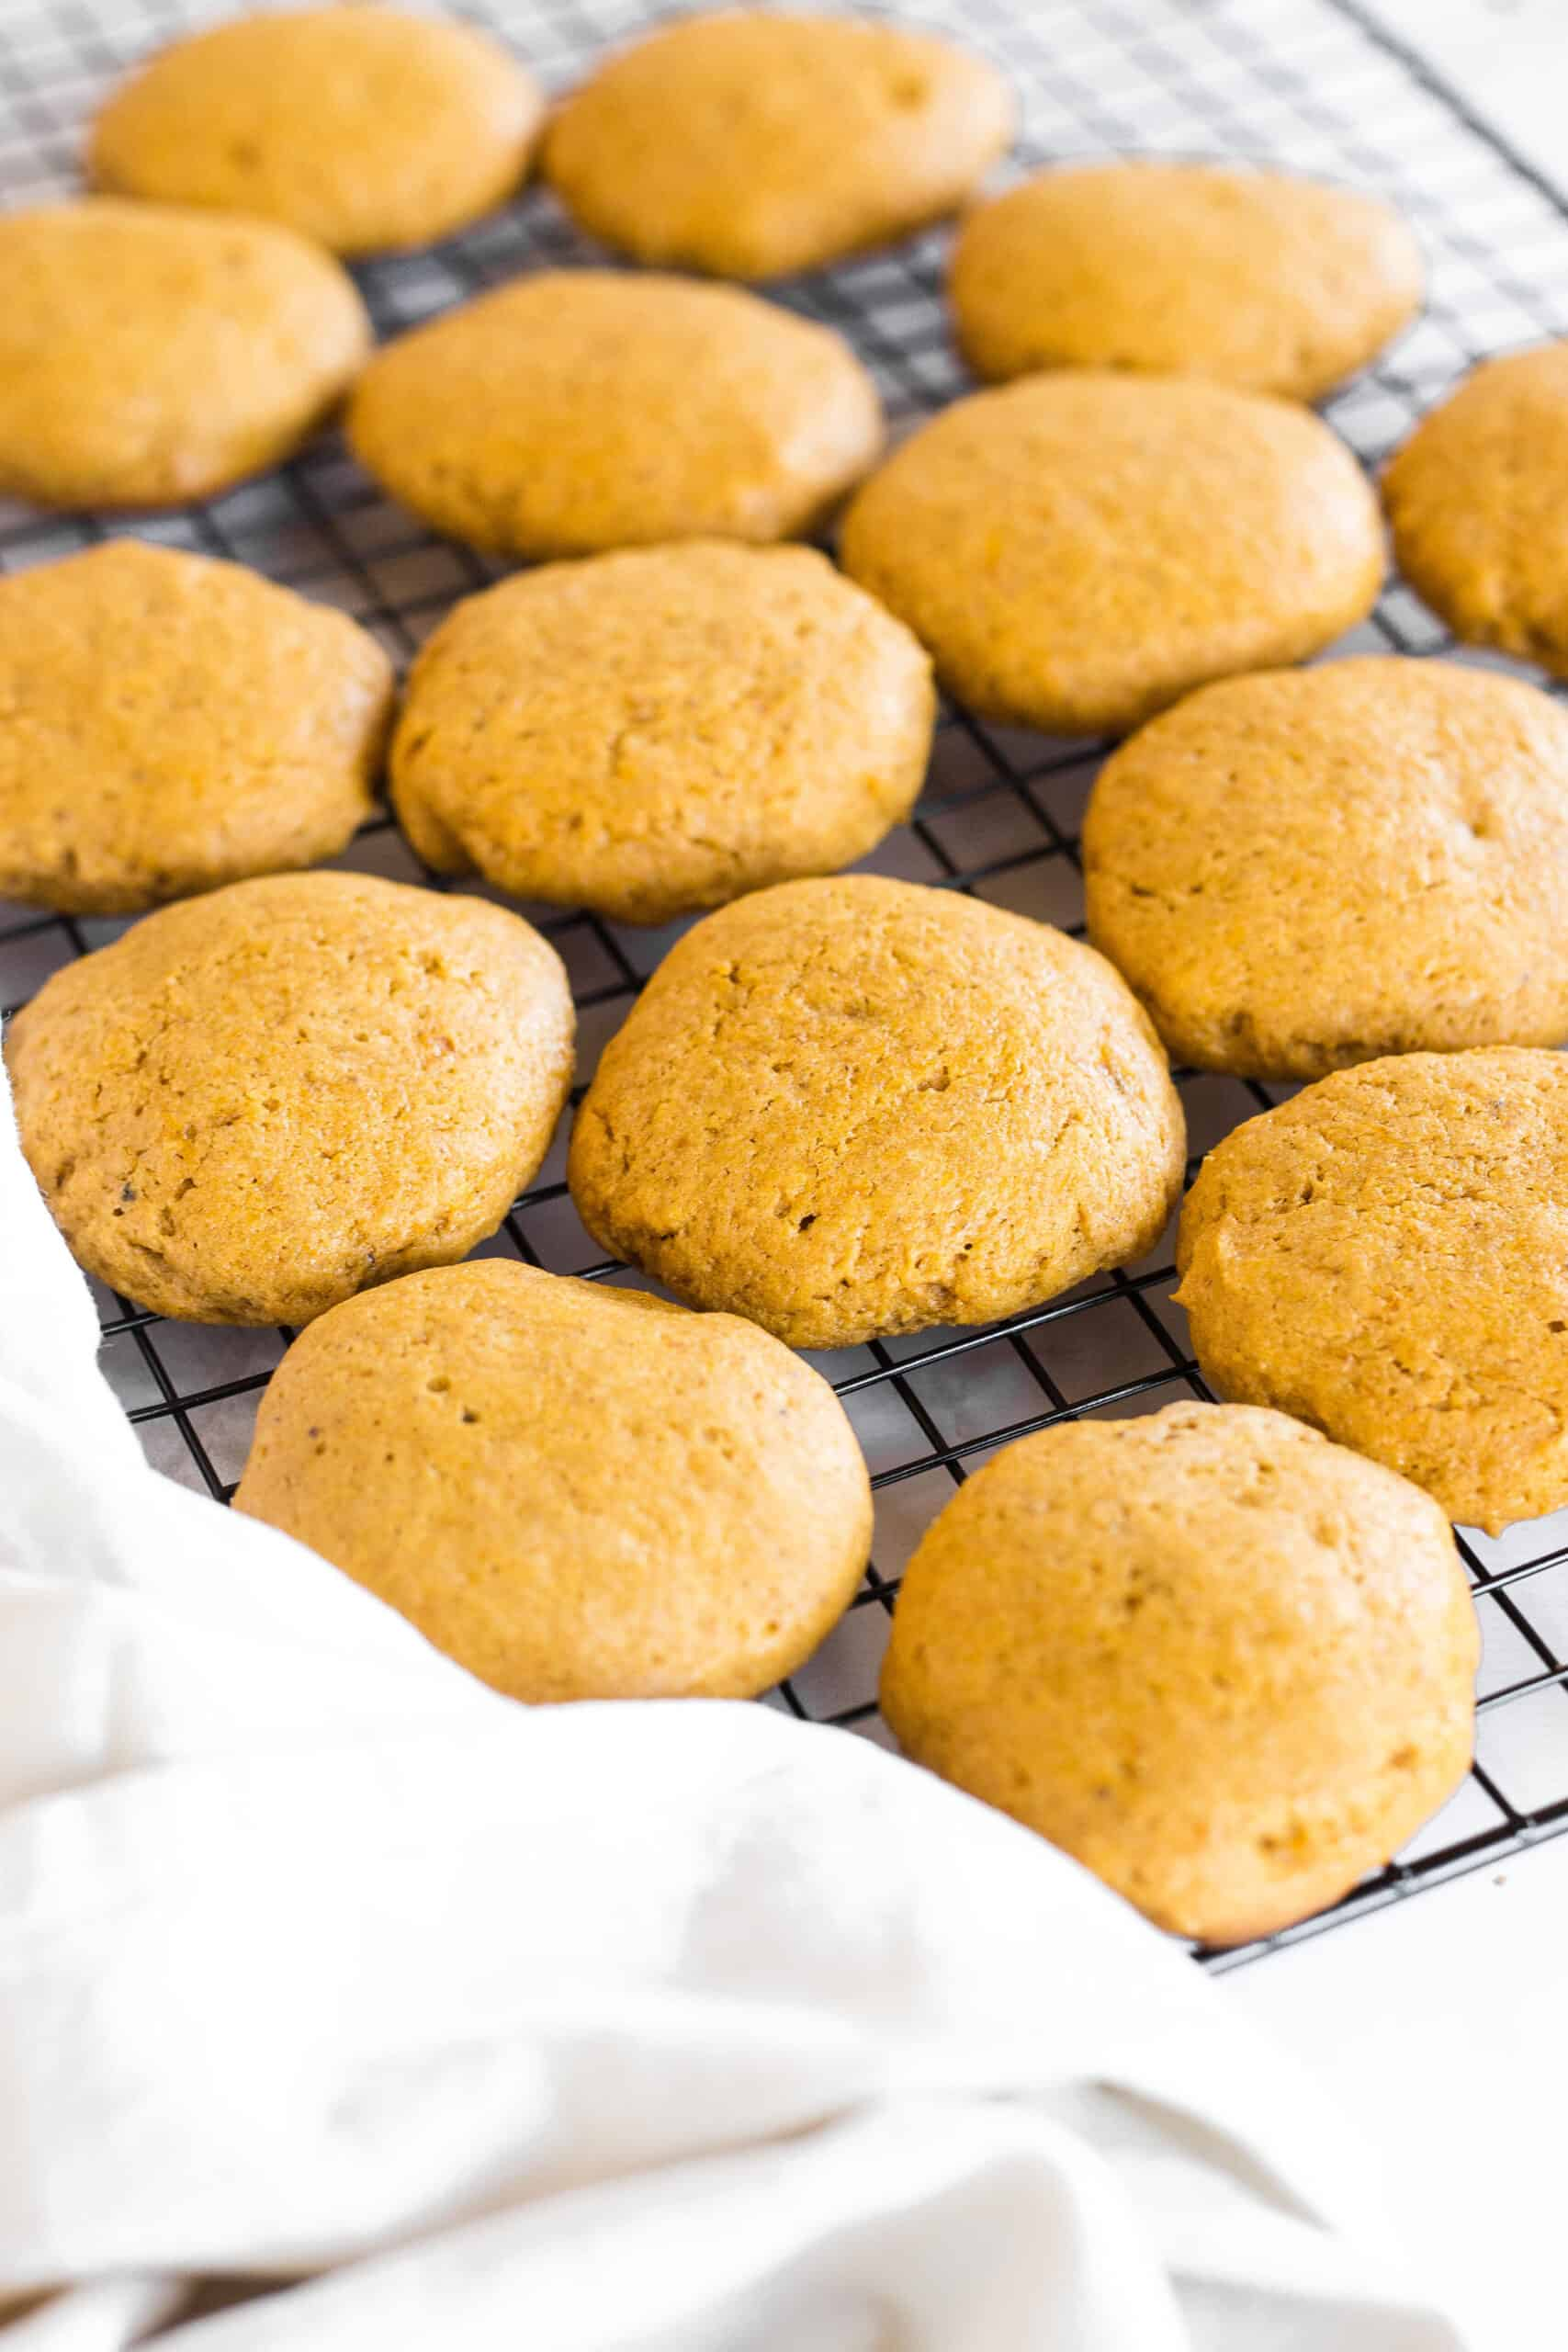 Soft pumpkin cookies on a wire rack with a kitchen towel.